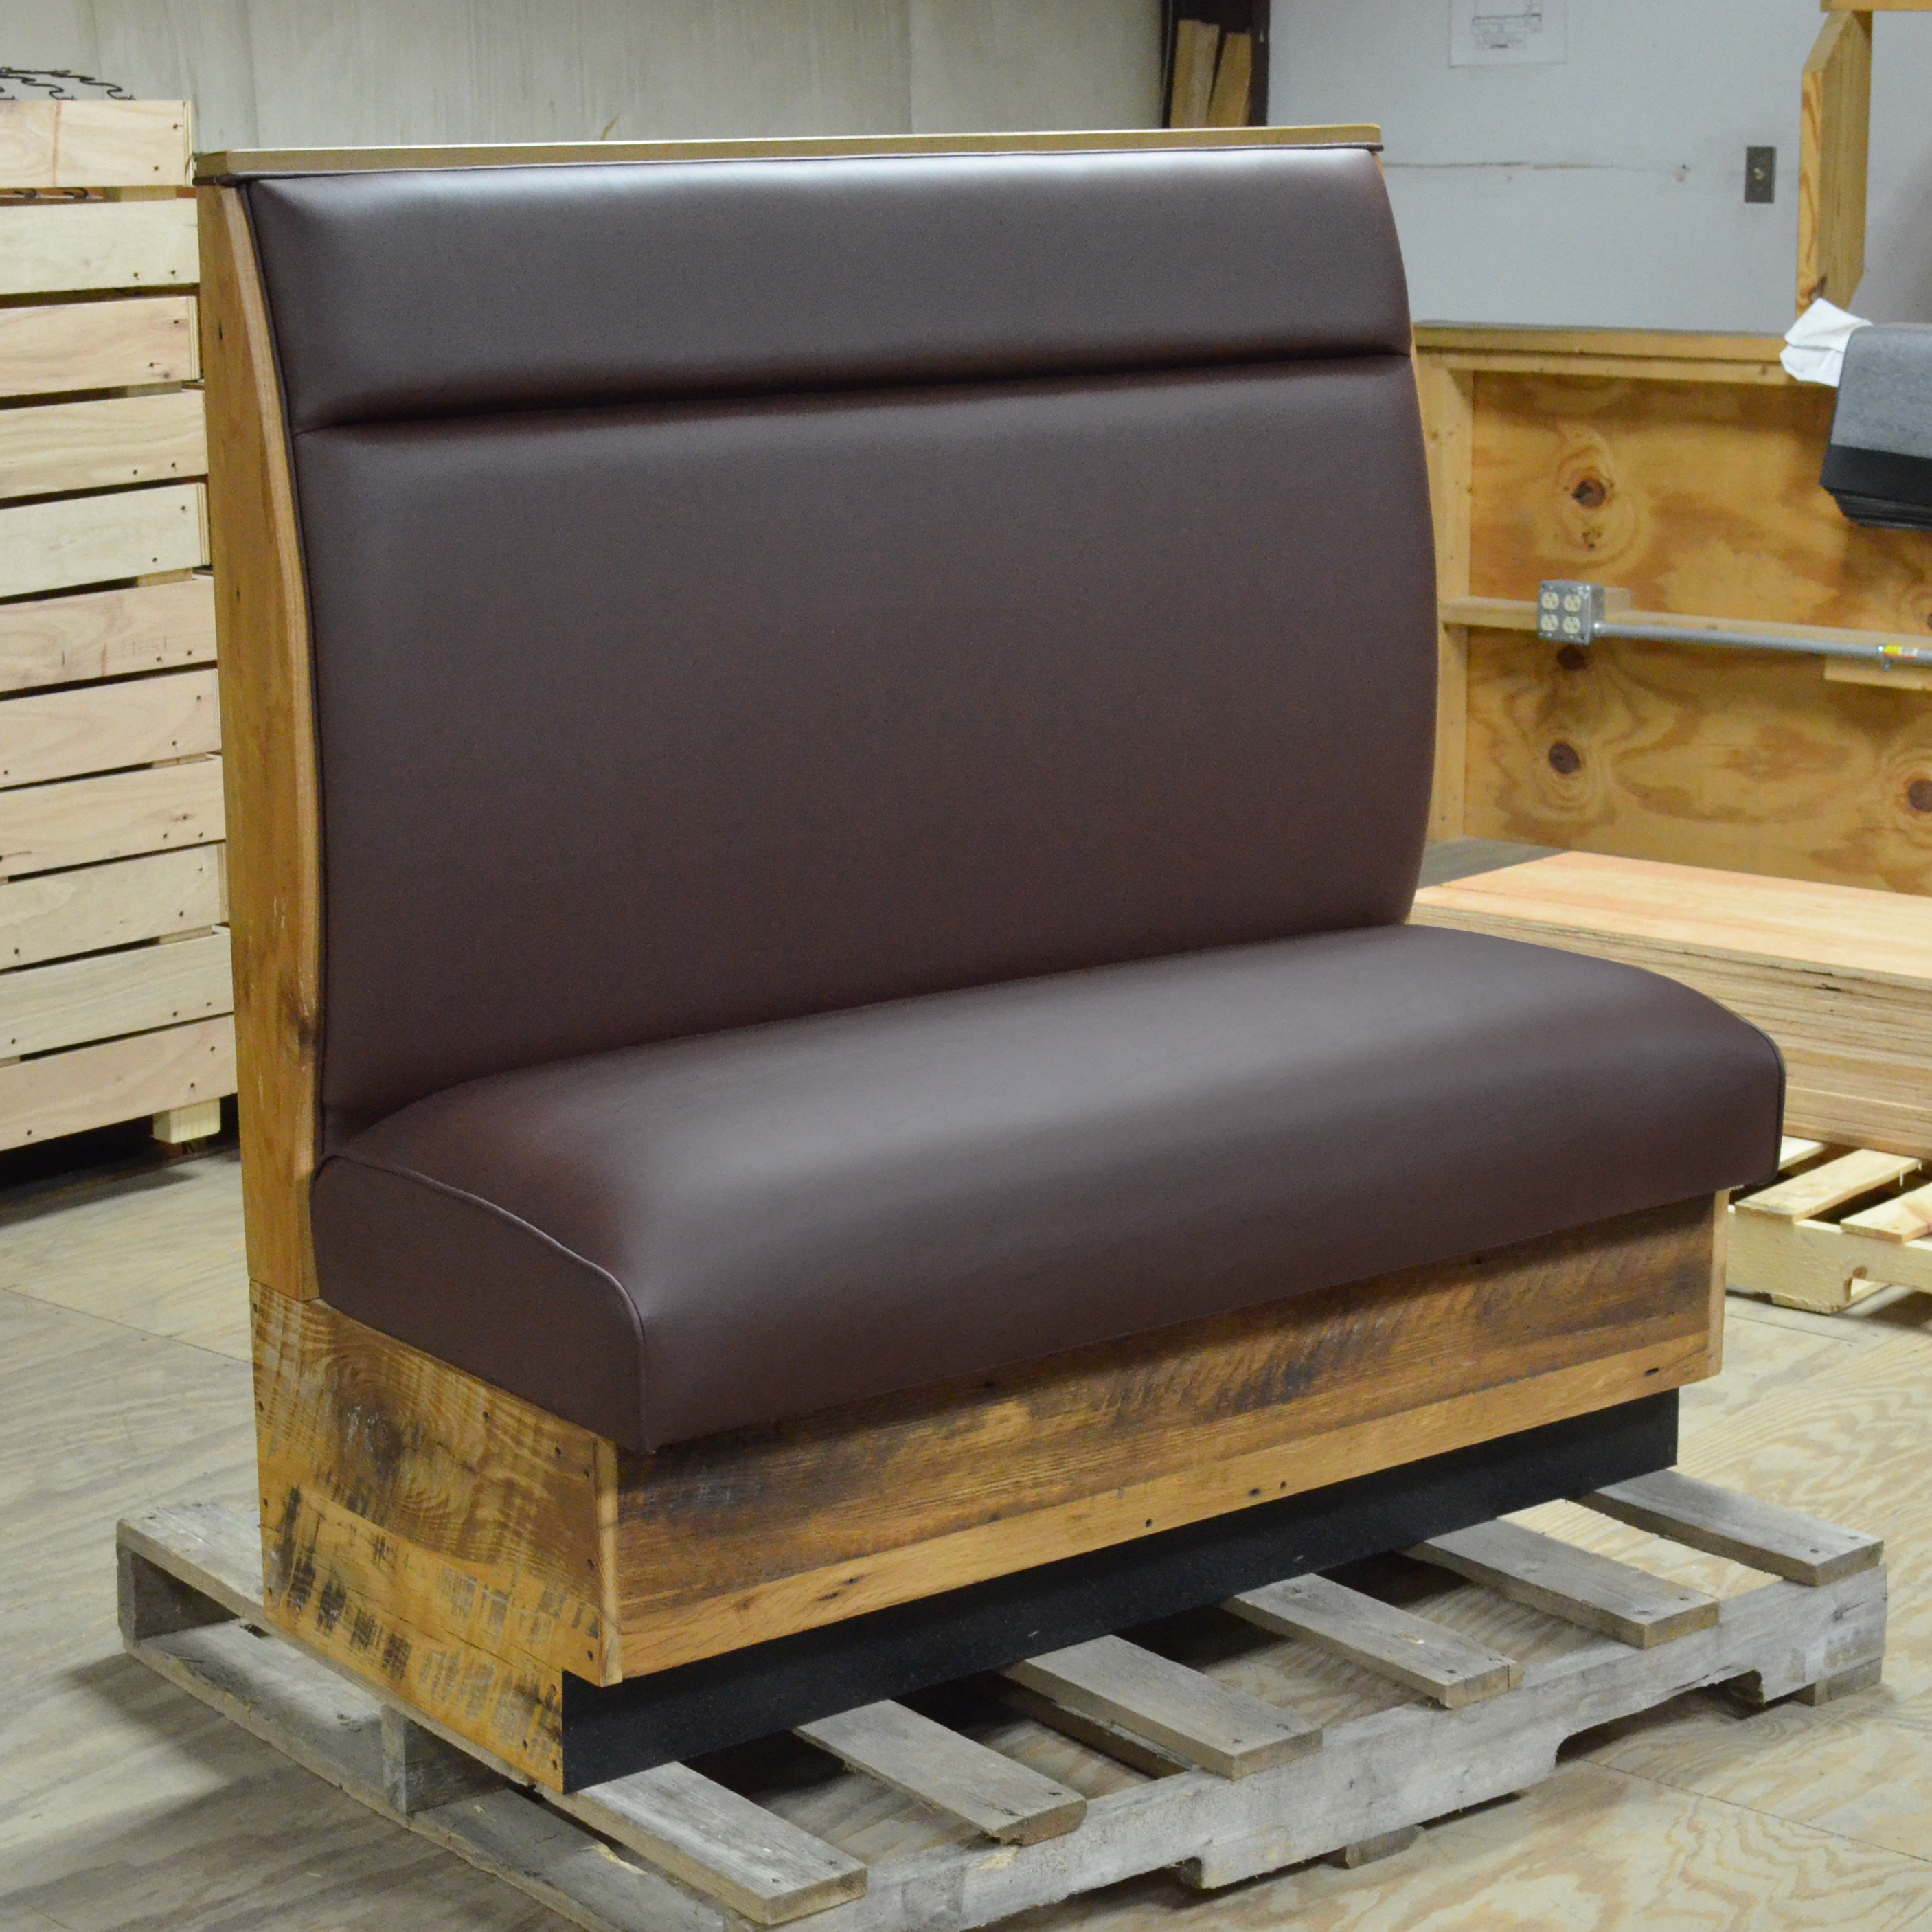 plum-with-wood-base-and-trip.jpg